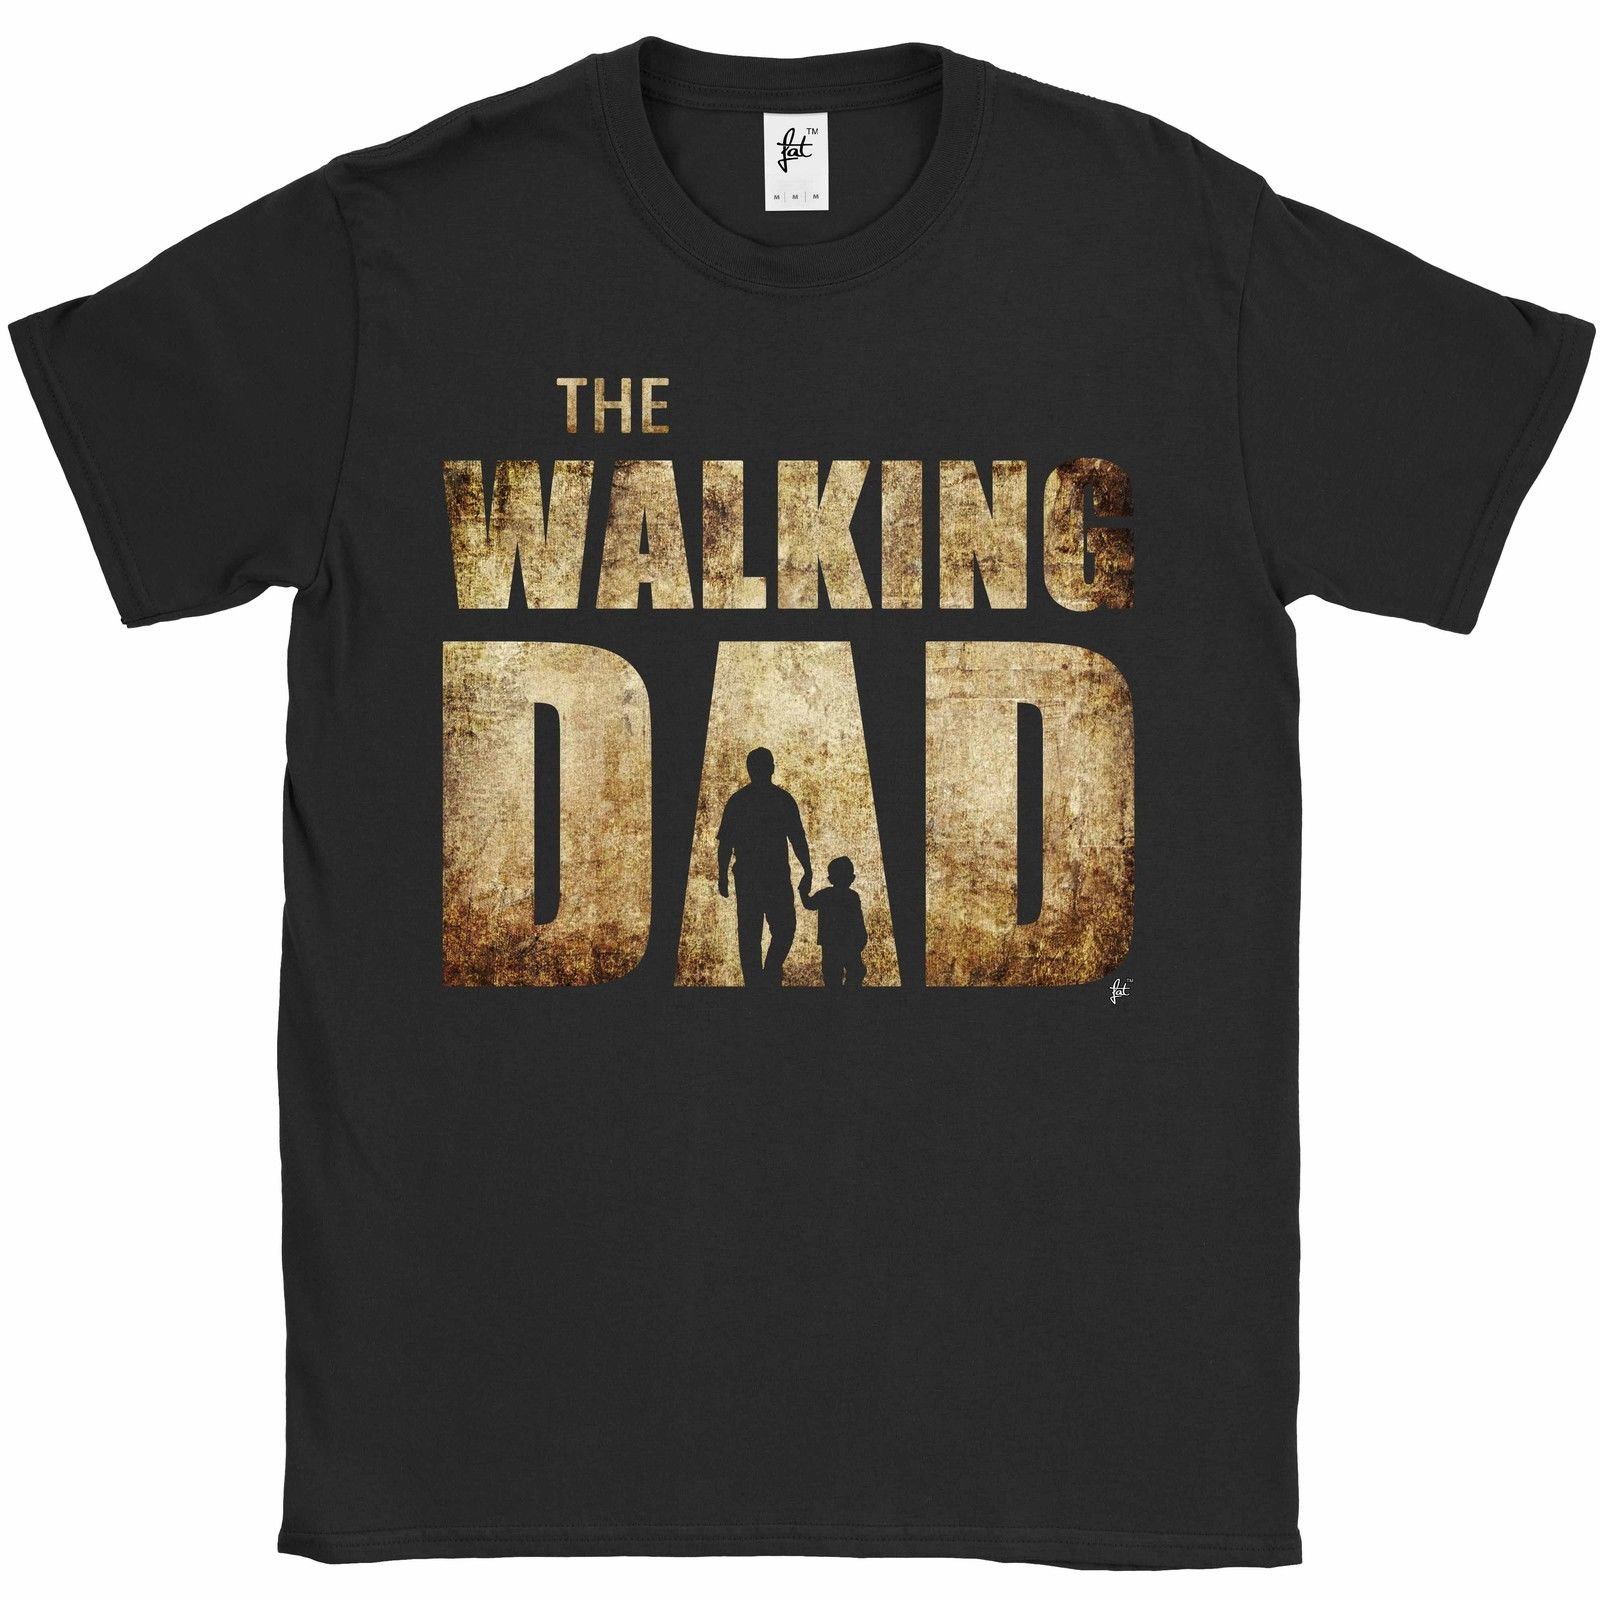 The Walking Dad Parody Father Son Fathers Day Mens T-Shirt O Neck T Shirt Short Sleeve Top Tee O-Neck Cotton Tee Shirt for Men